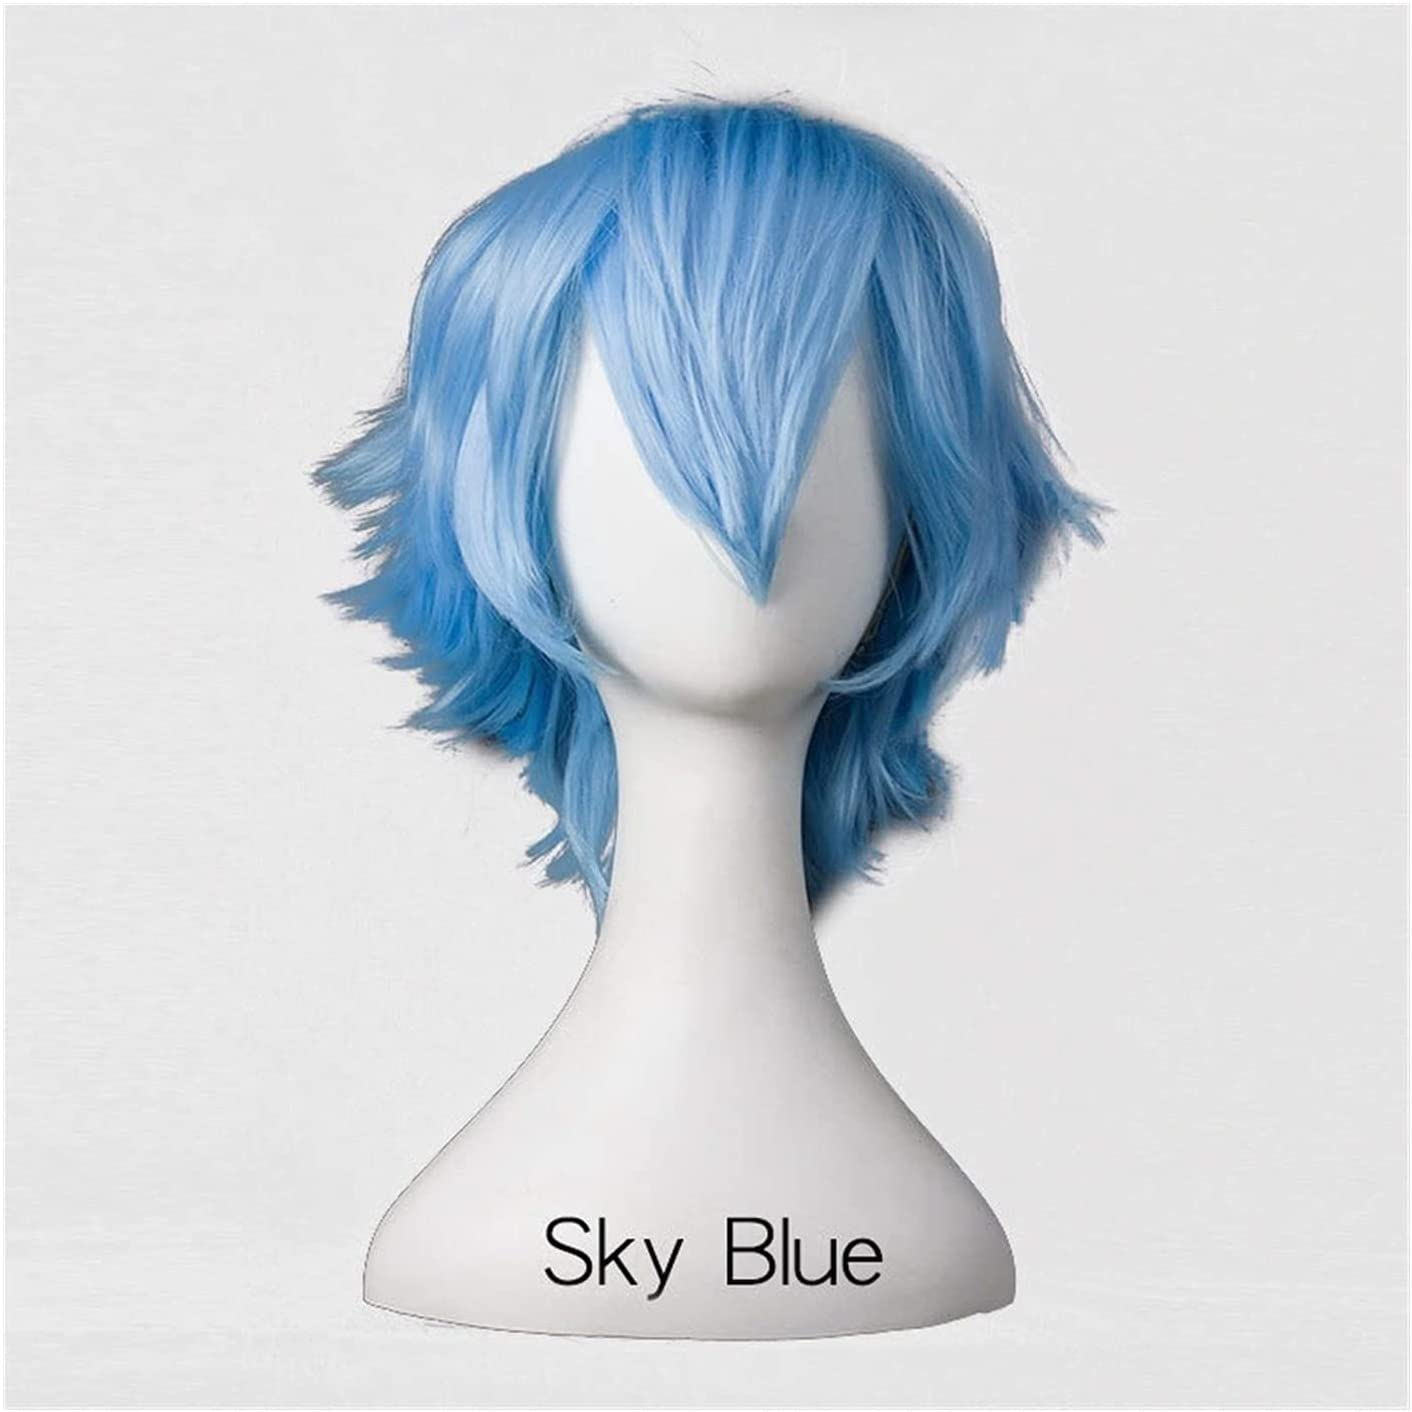 GDYJP Wigs 30cm Short Wig high Synthetic unisex Fiber Temperature Blue Baltimore Mall